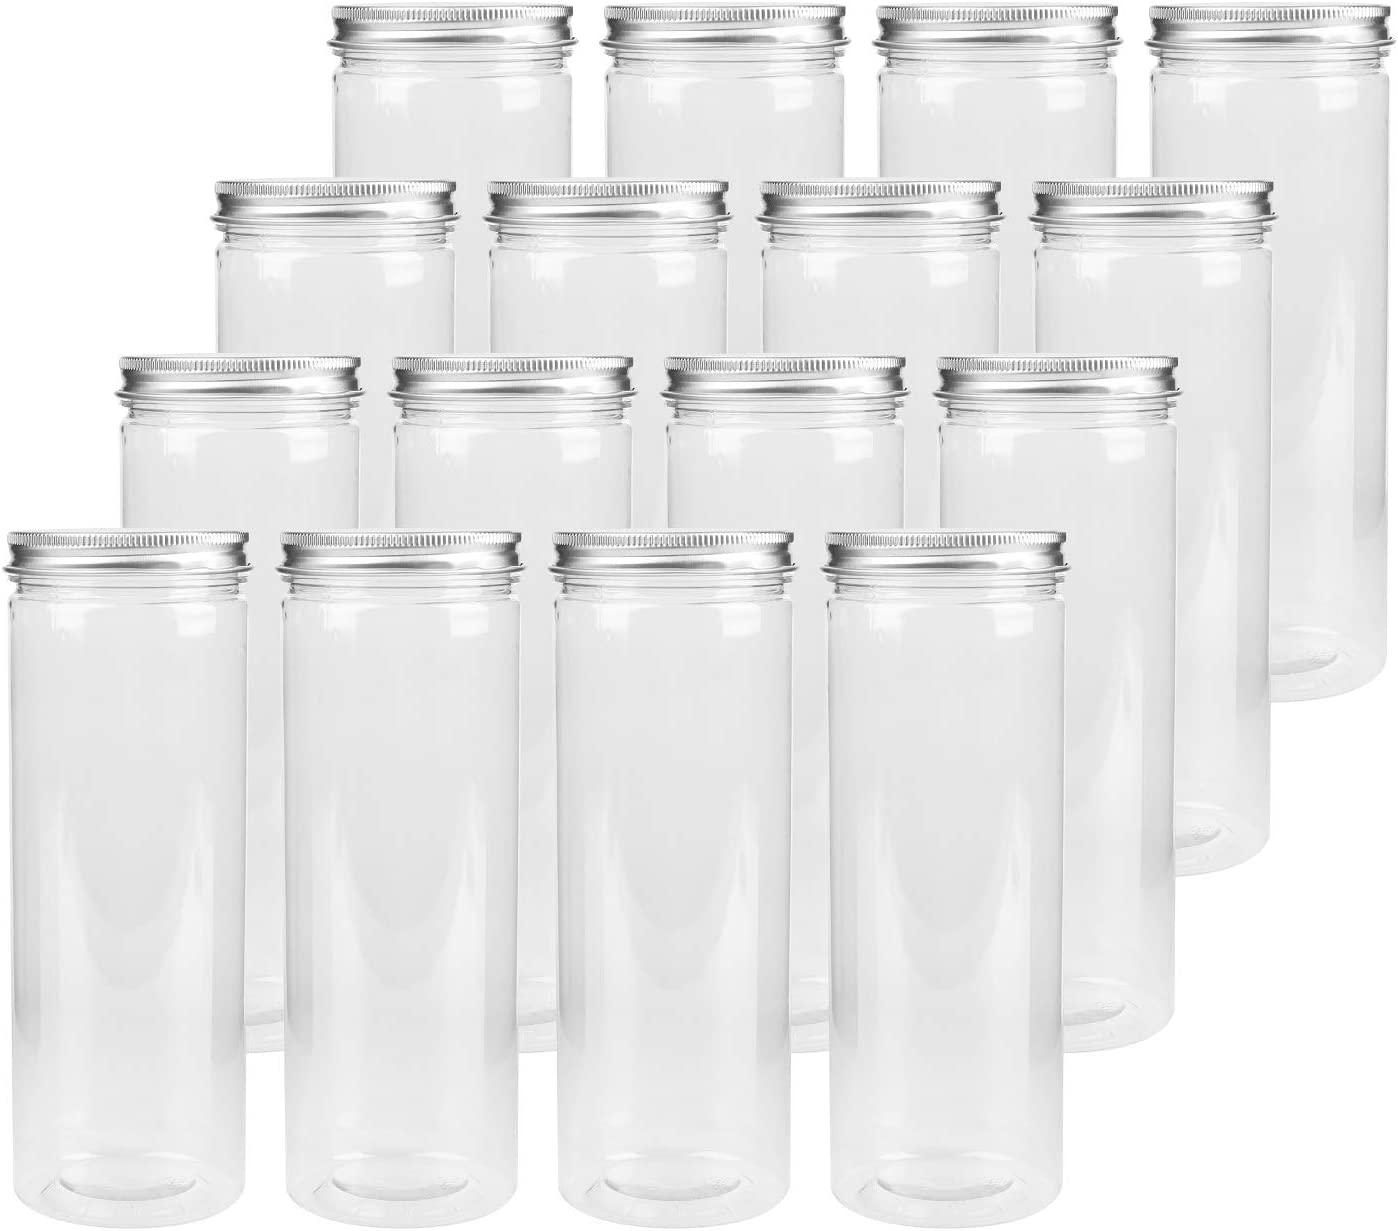 Tebery 16 Pack Plastic Spice Jars Bottles Containers with Lids 17oz Clear Straight Cylinders Plastic Canisters for Food & Home Storage